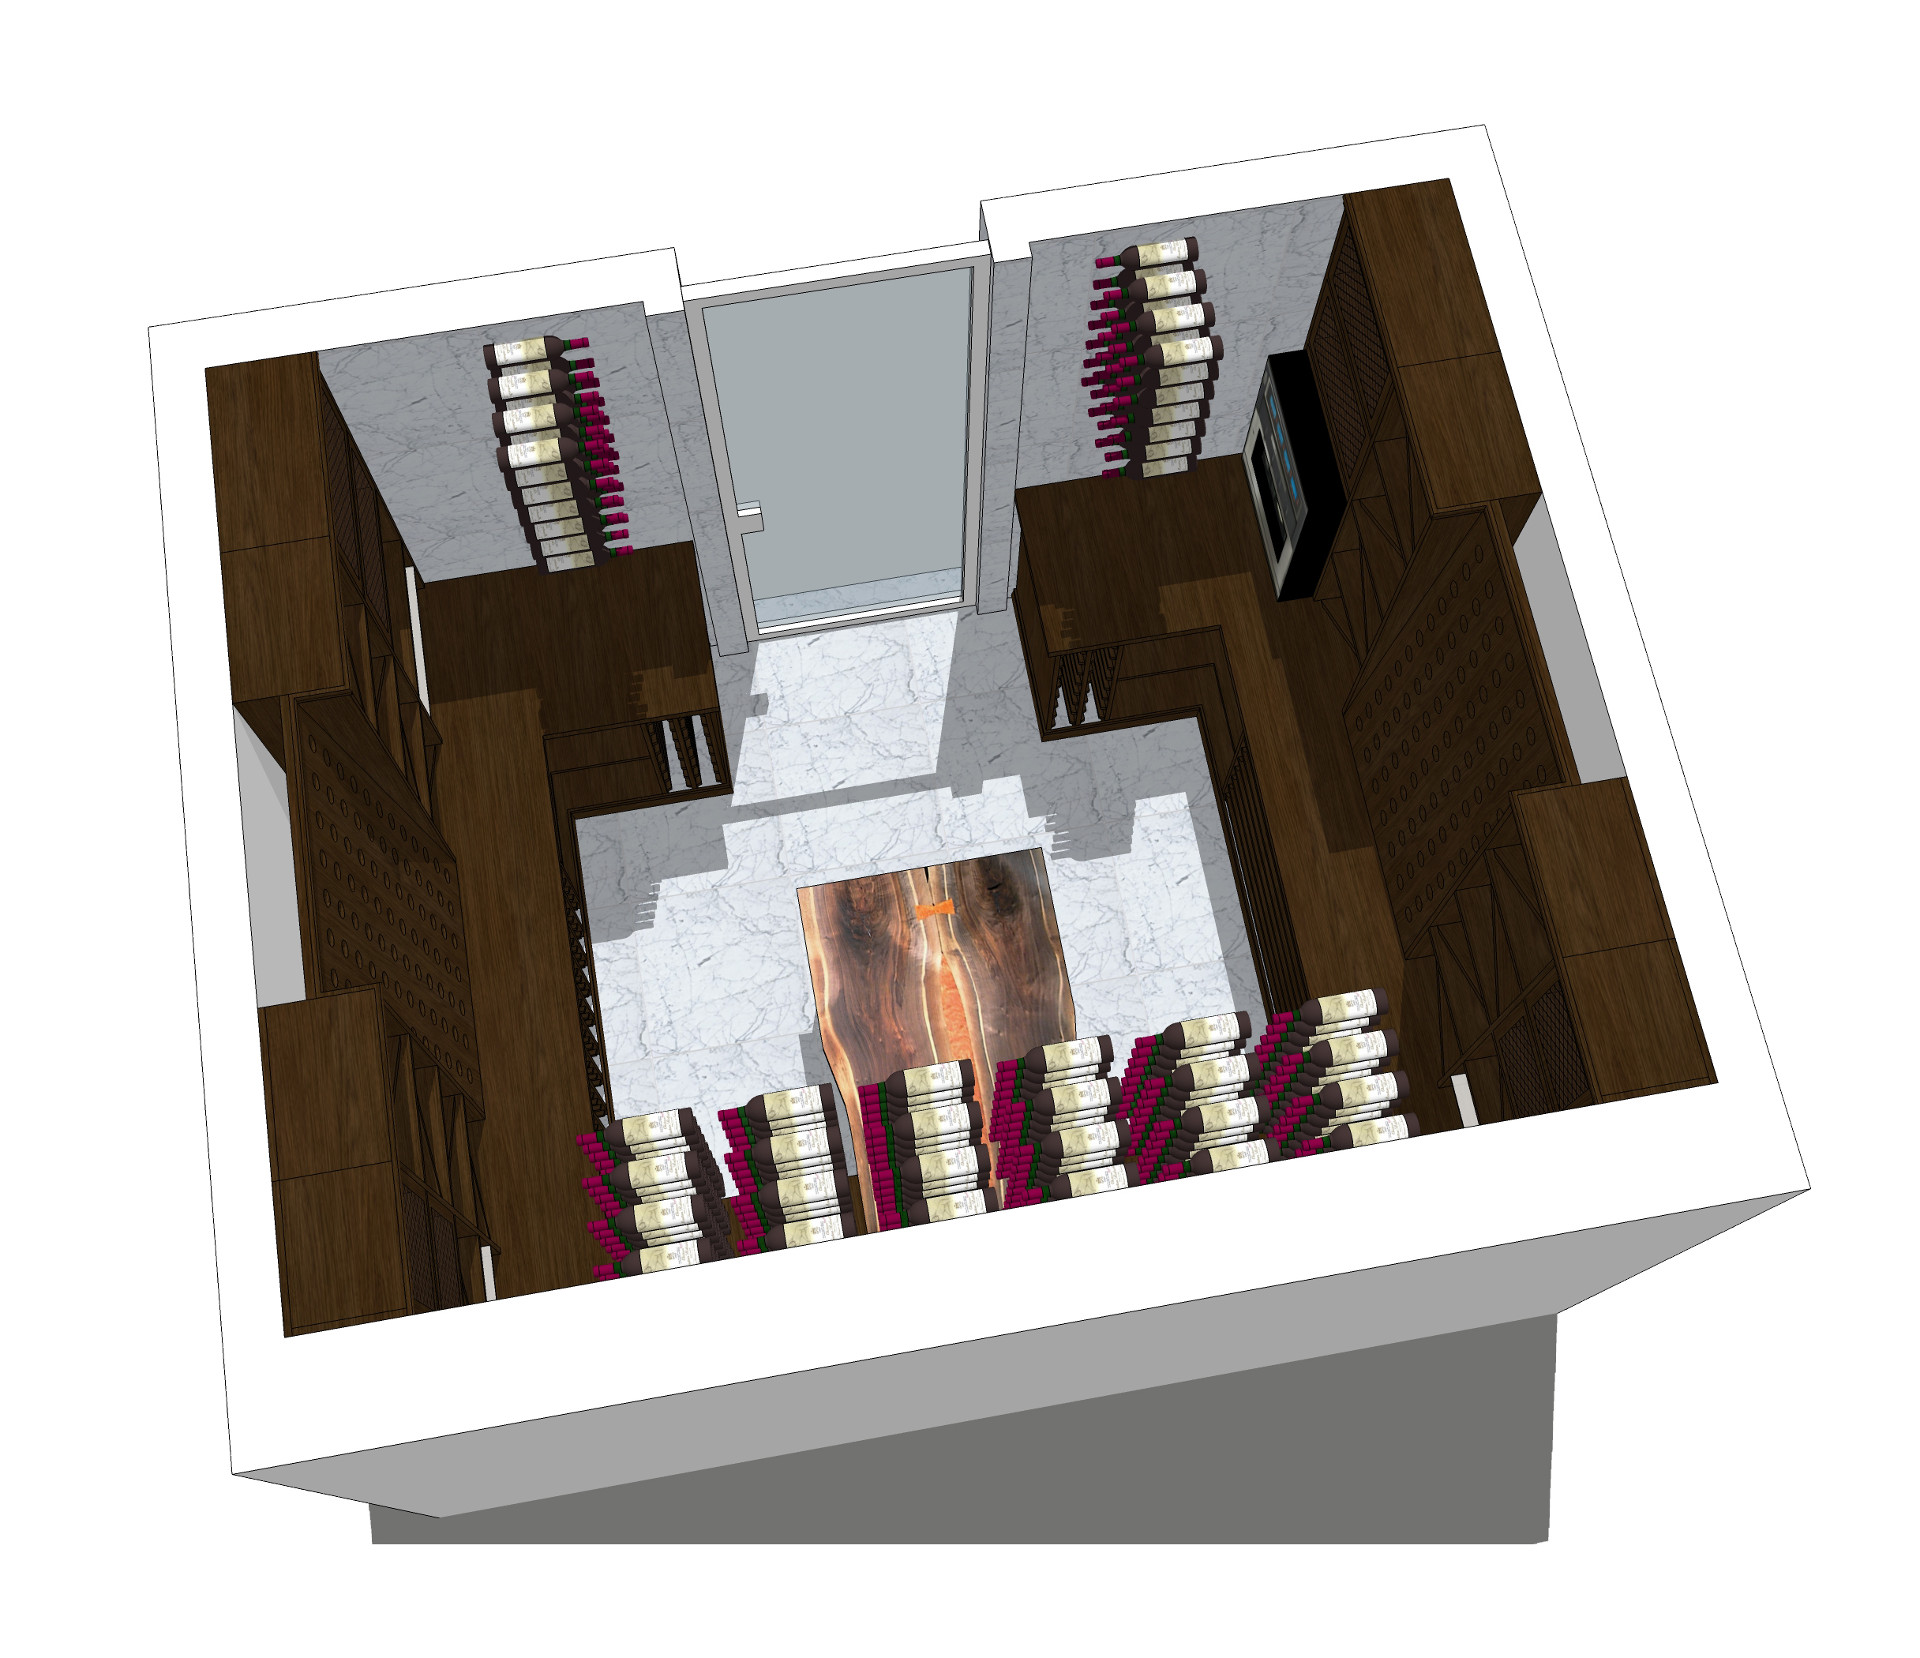 wine cellar revision 2h